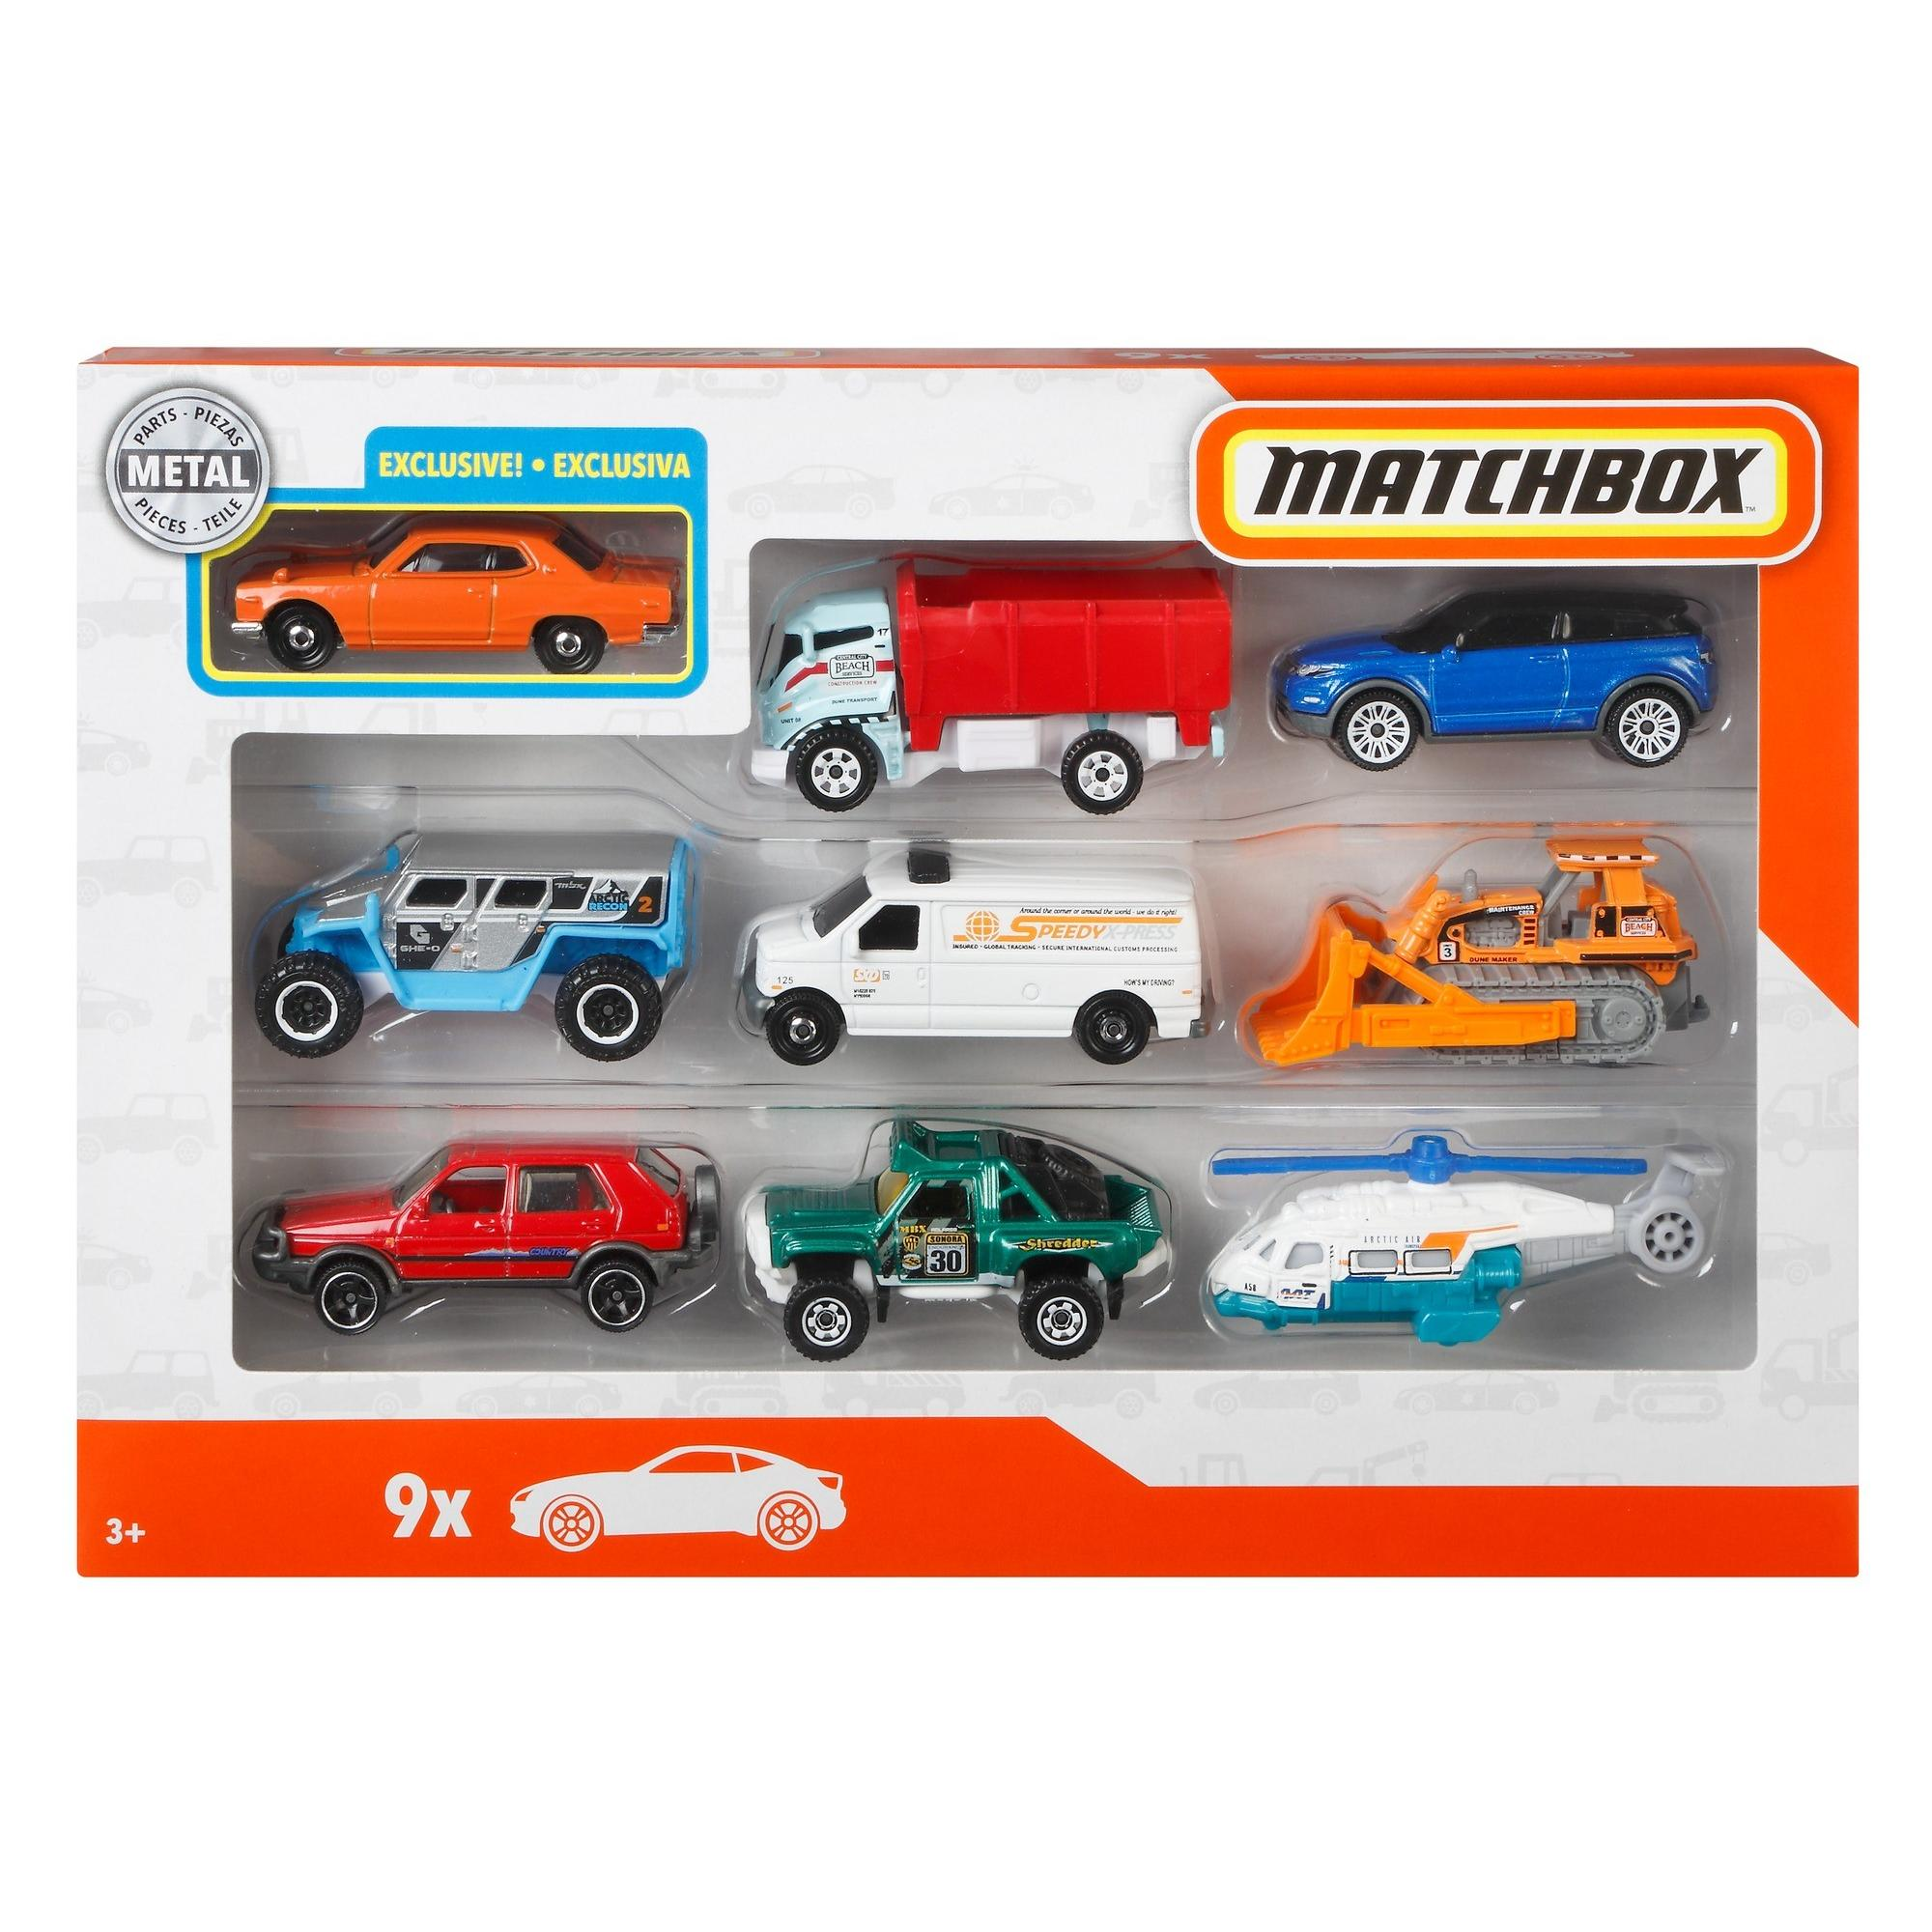 Matchbox 9 Car Gift Pack (Styles May Vary)